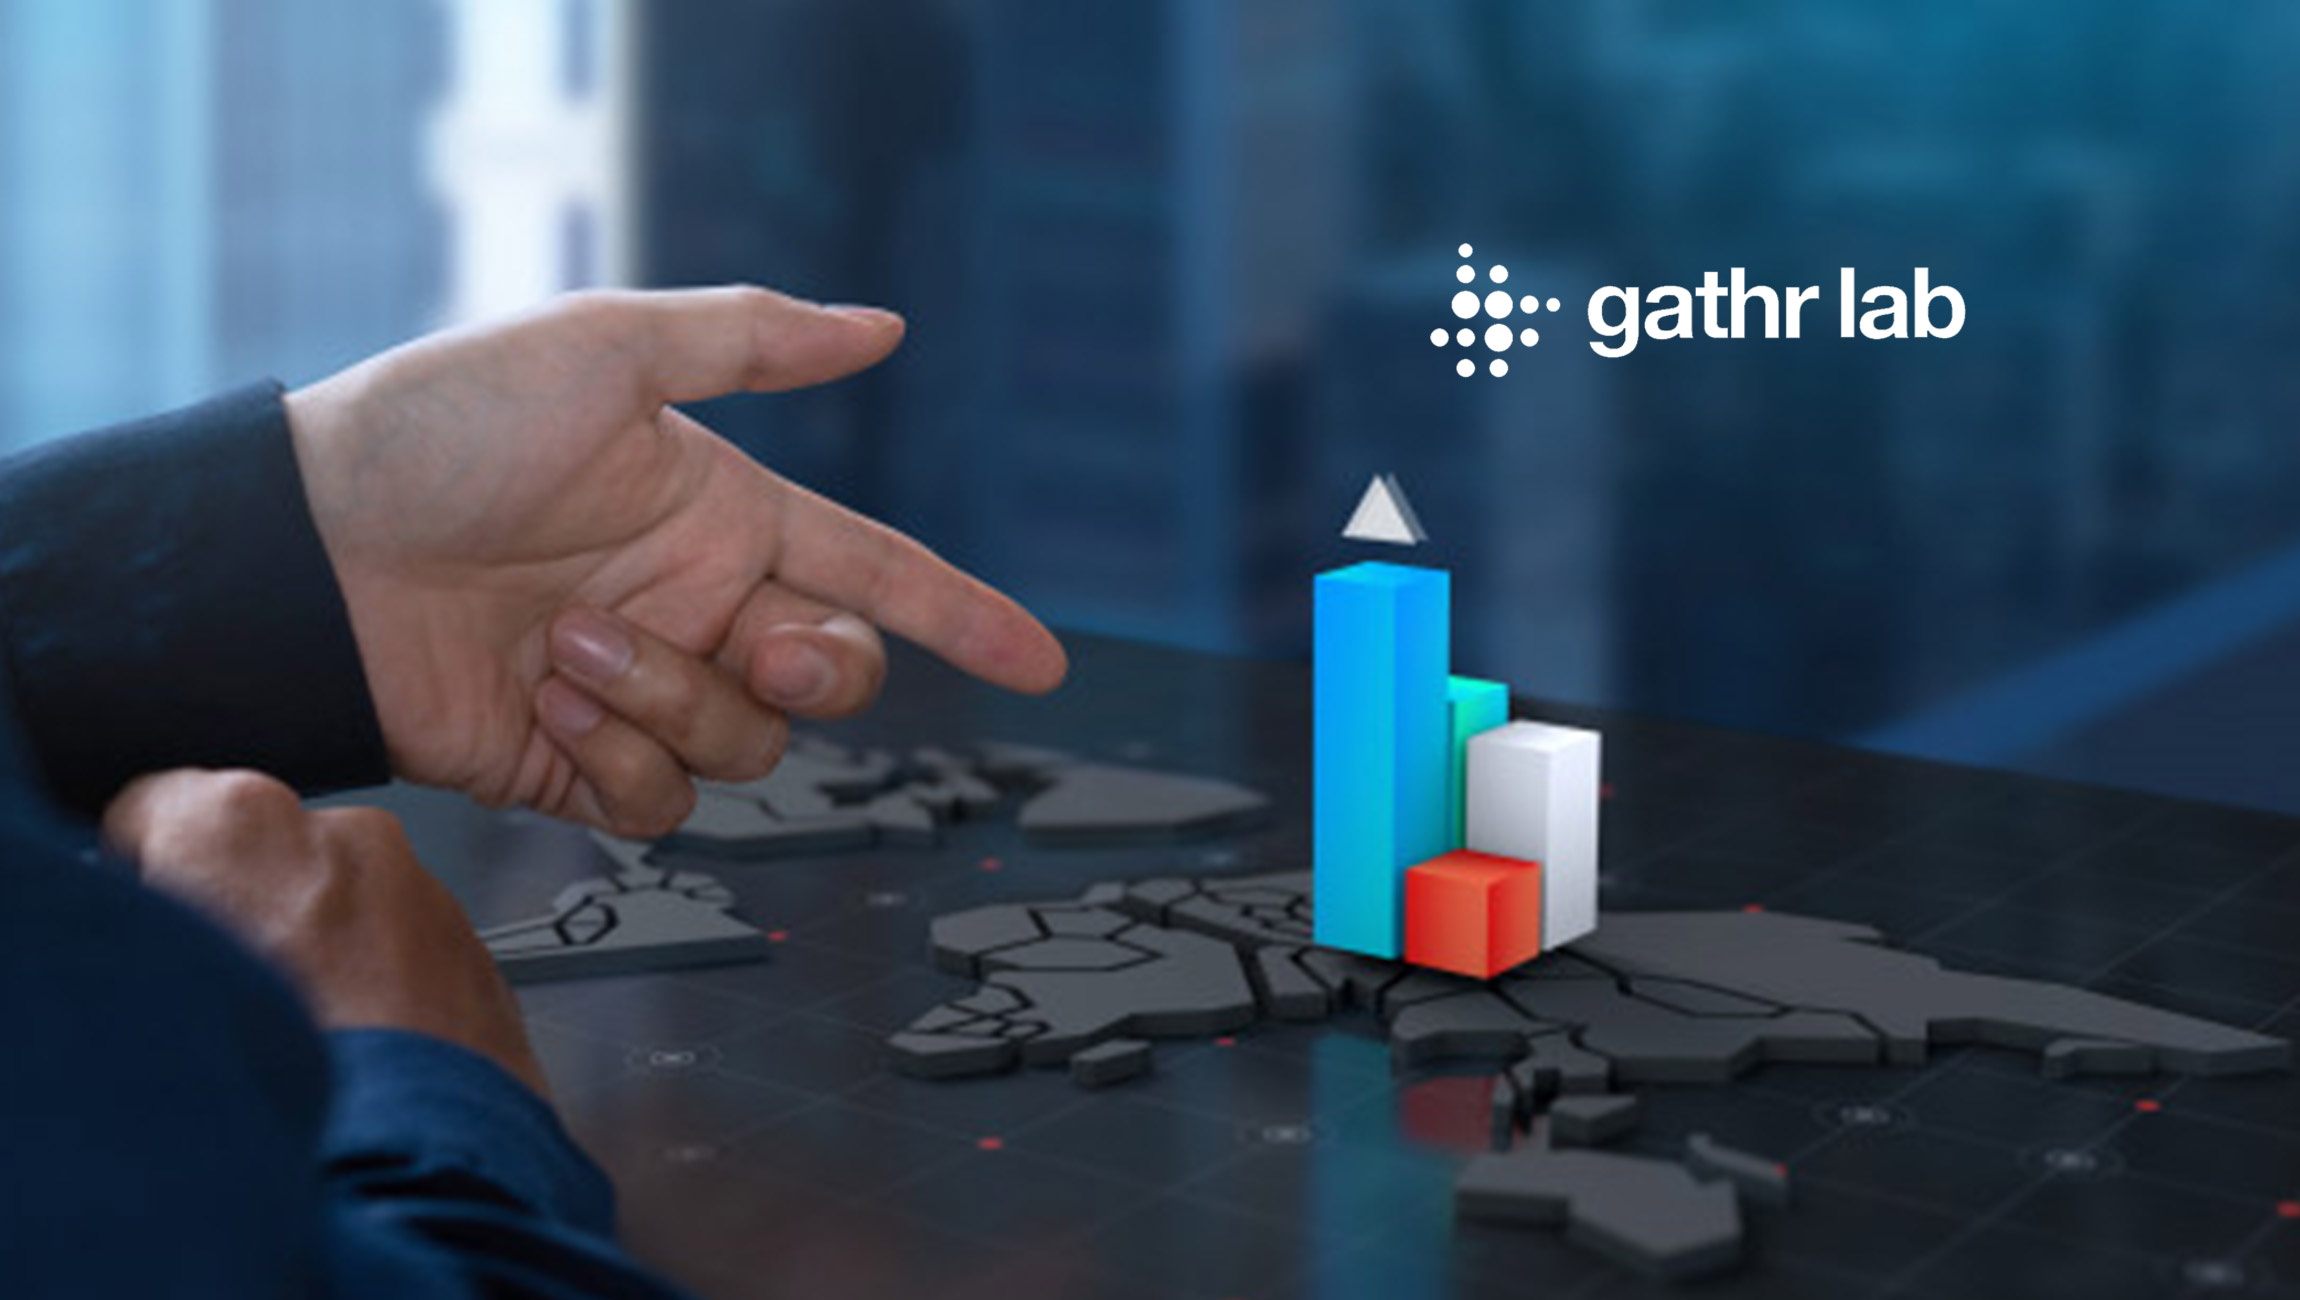 Gathr Lab Launches New Technology Set to Break the Black-Box Approach and Empower Marketers to Understand, Reach and Grow Their Audiences